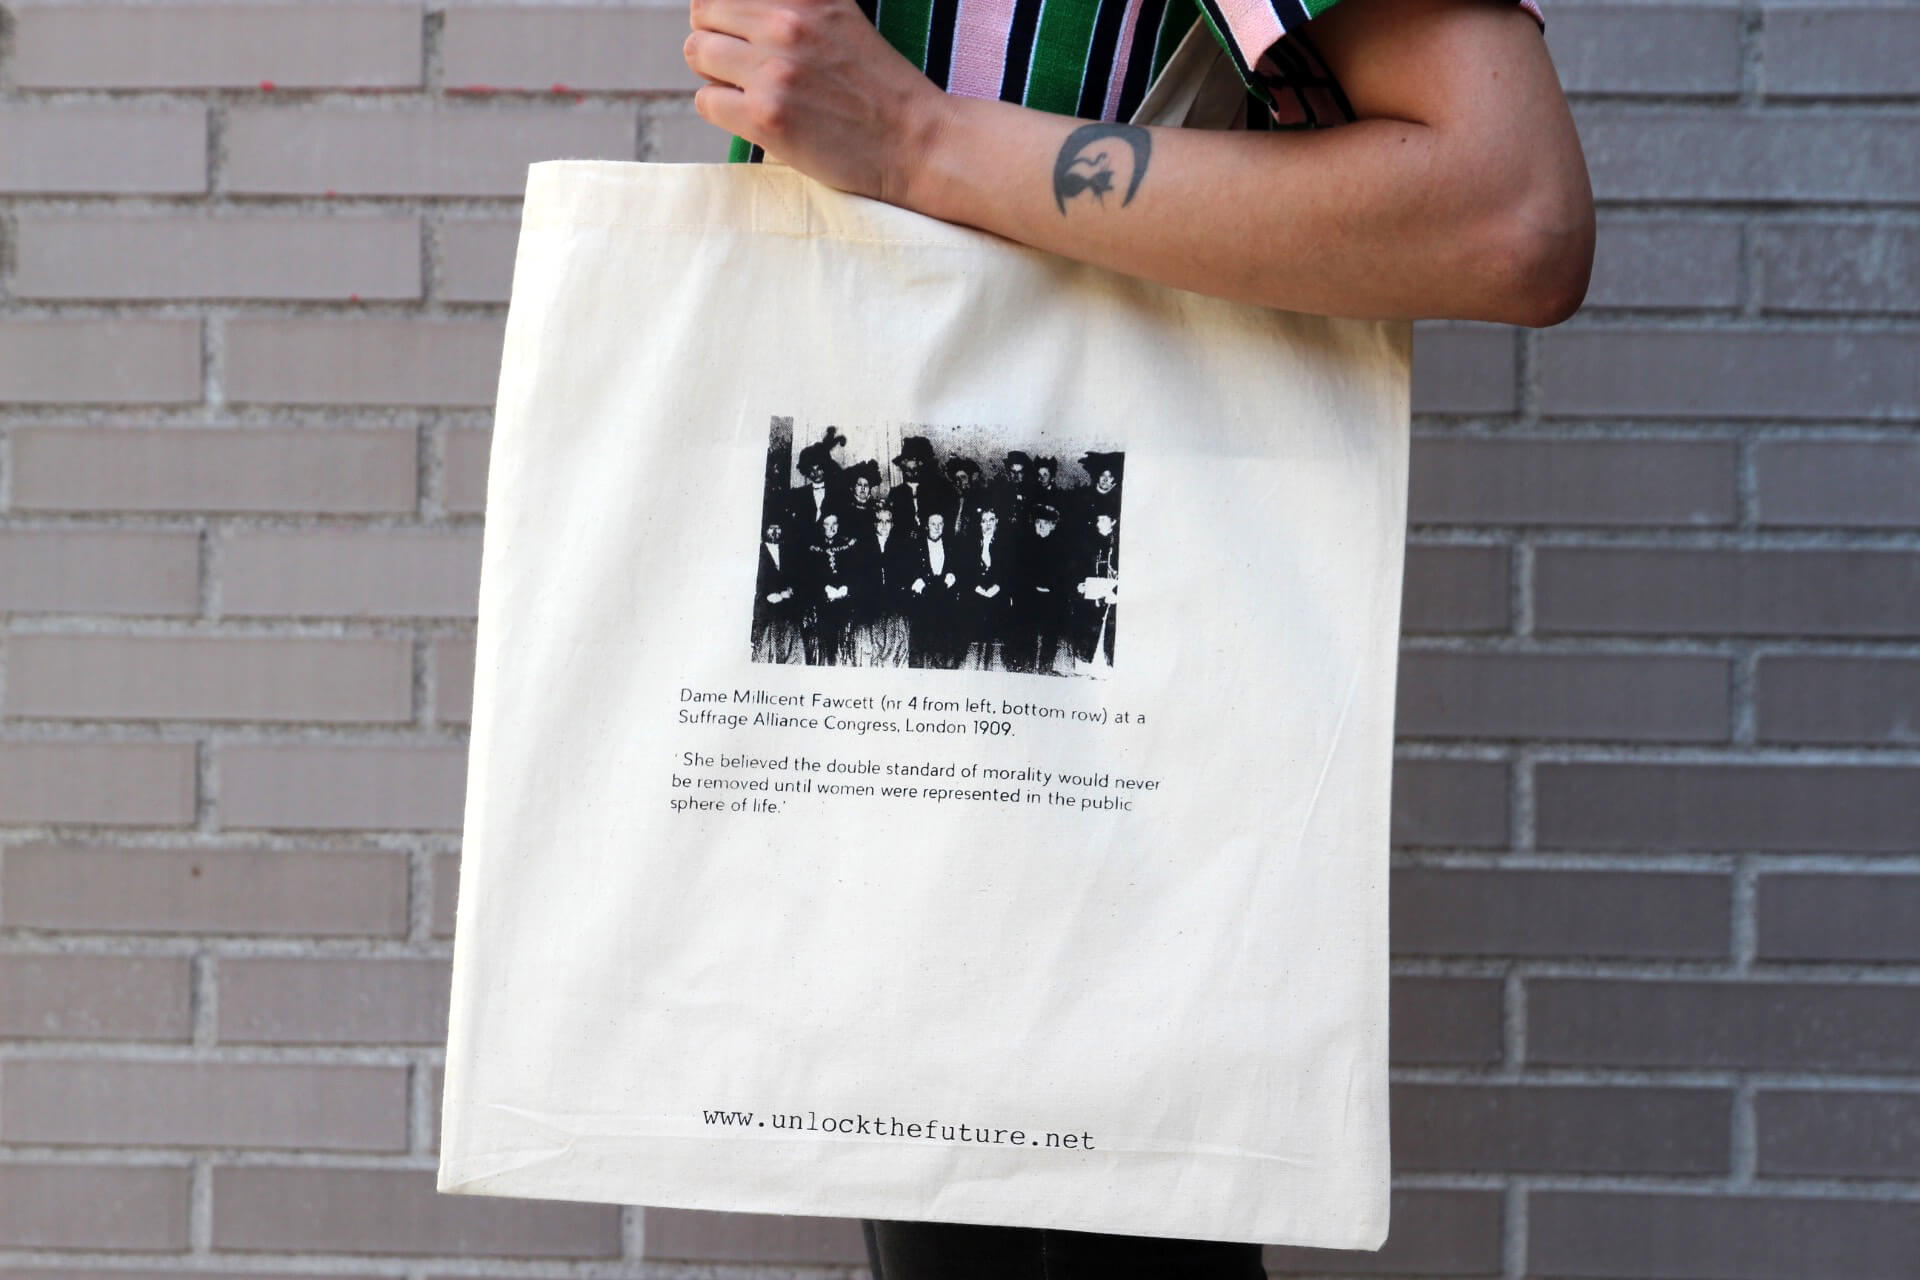 Tote Bags for Pacwoman Productions